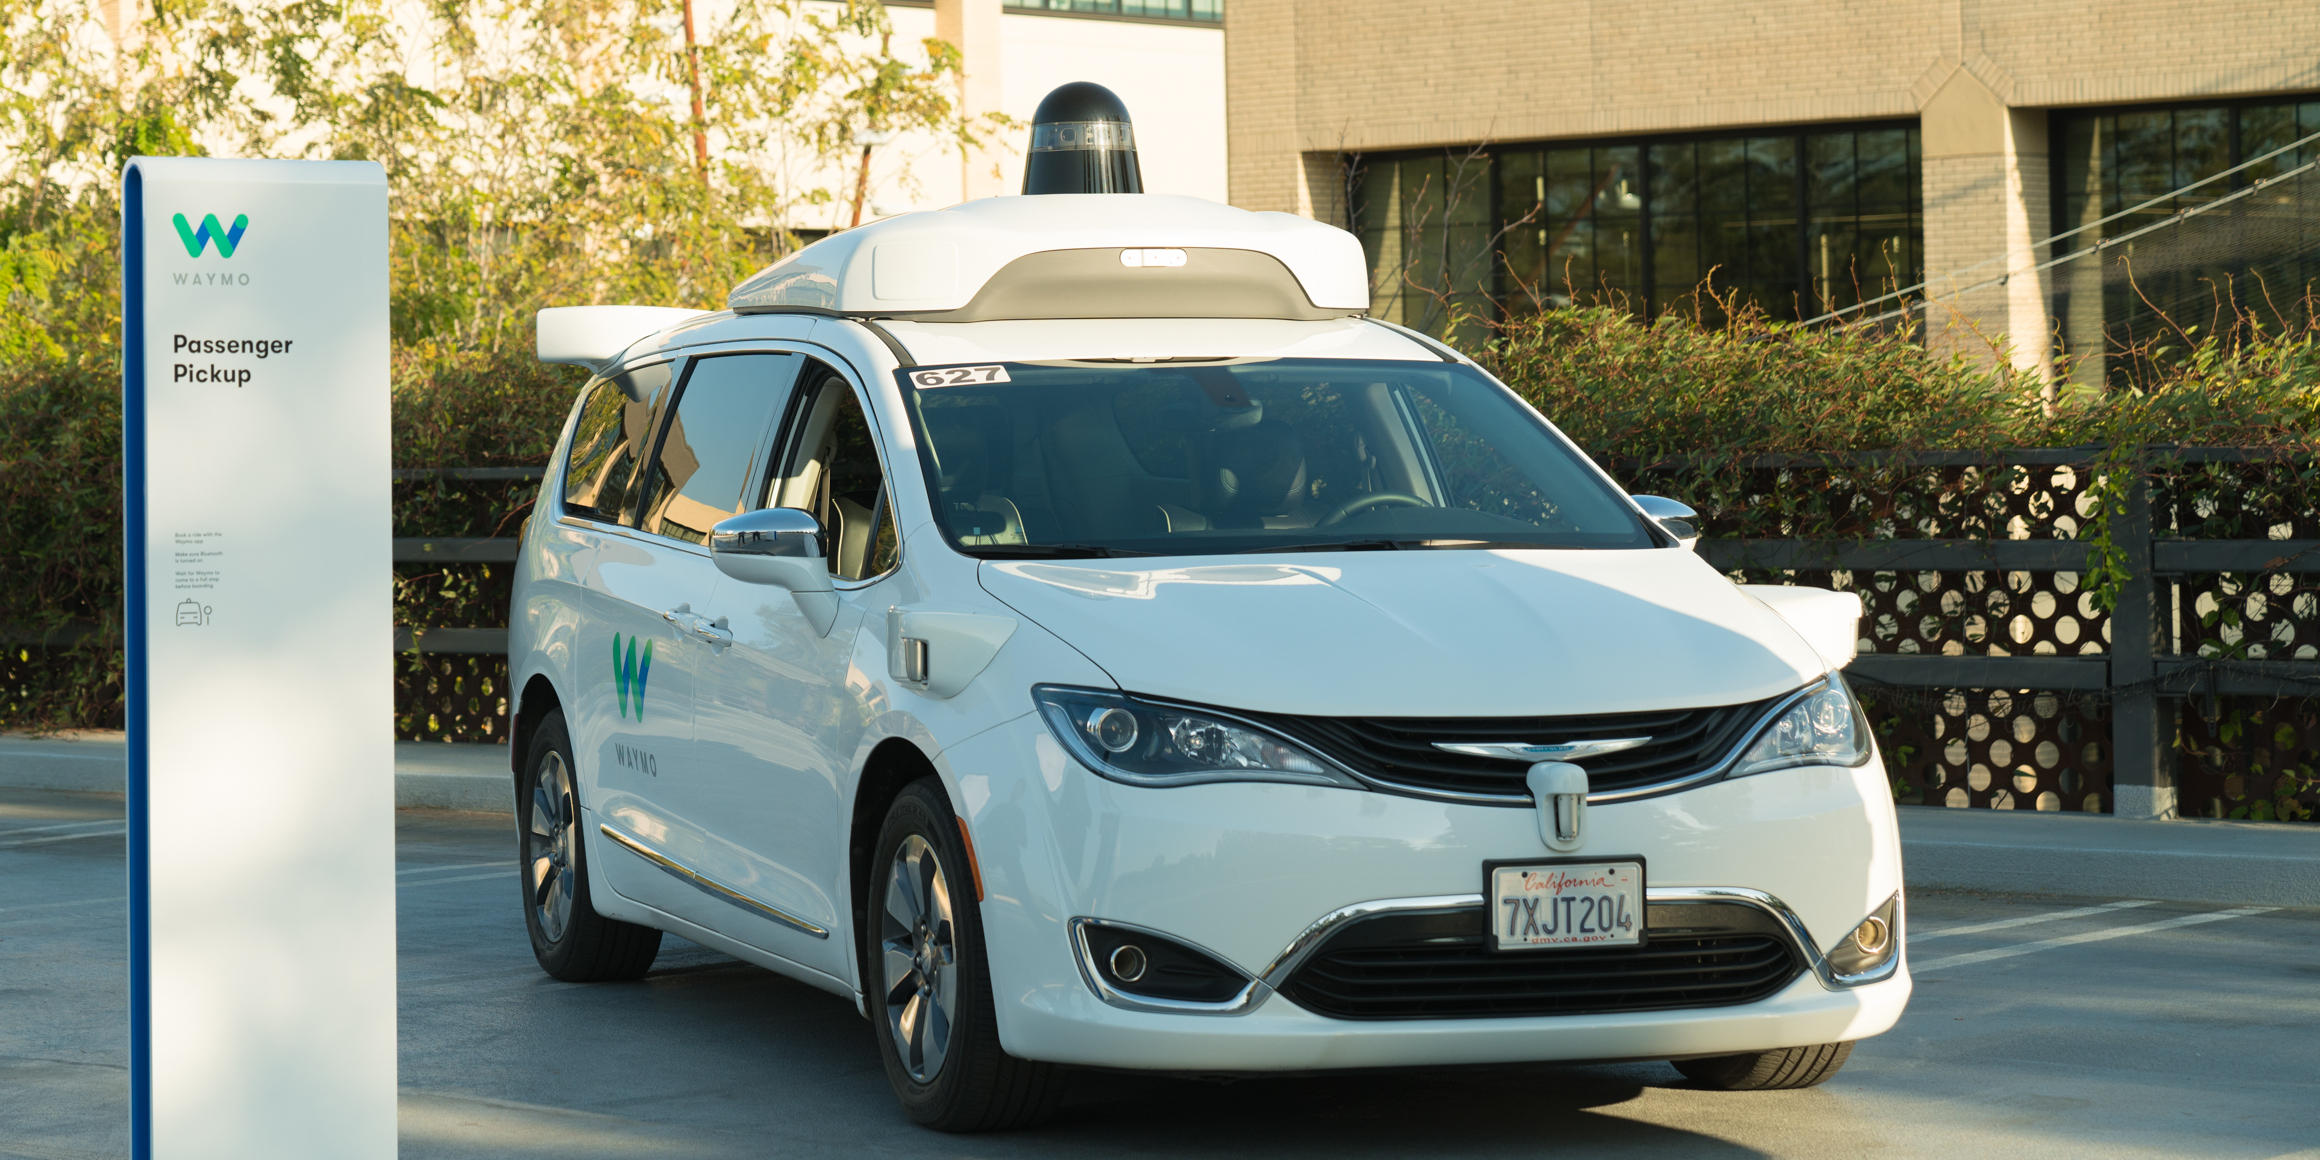 waymo autonomously drives one million miles in a month 25k miles per day